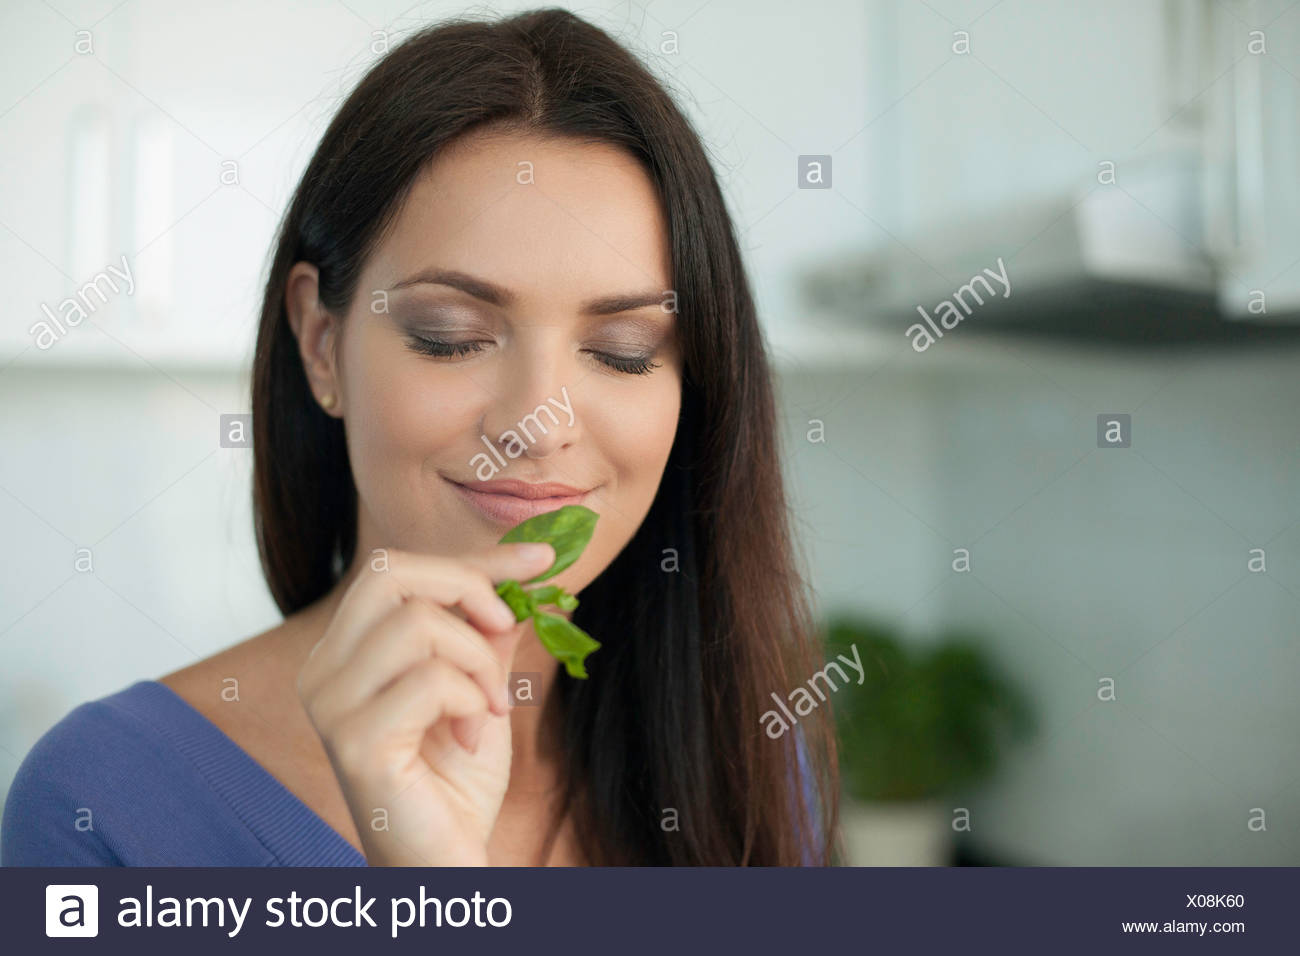 Portrait of young woman smelling basil - Stock Image